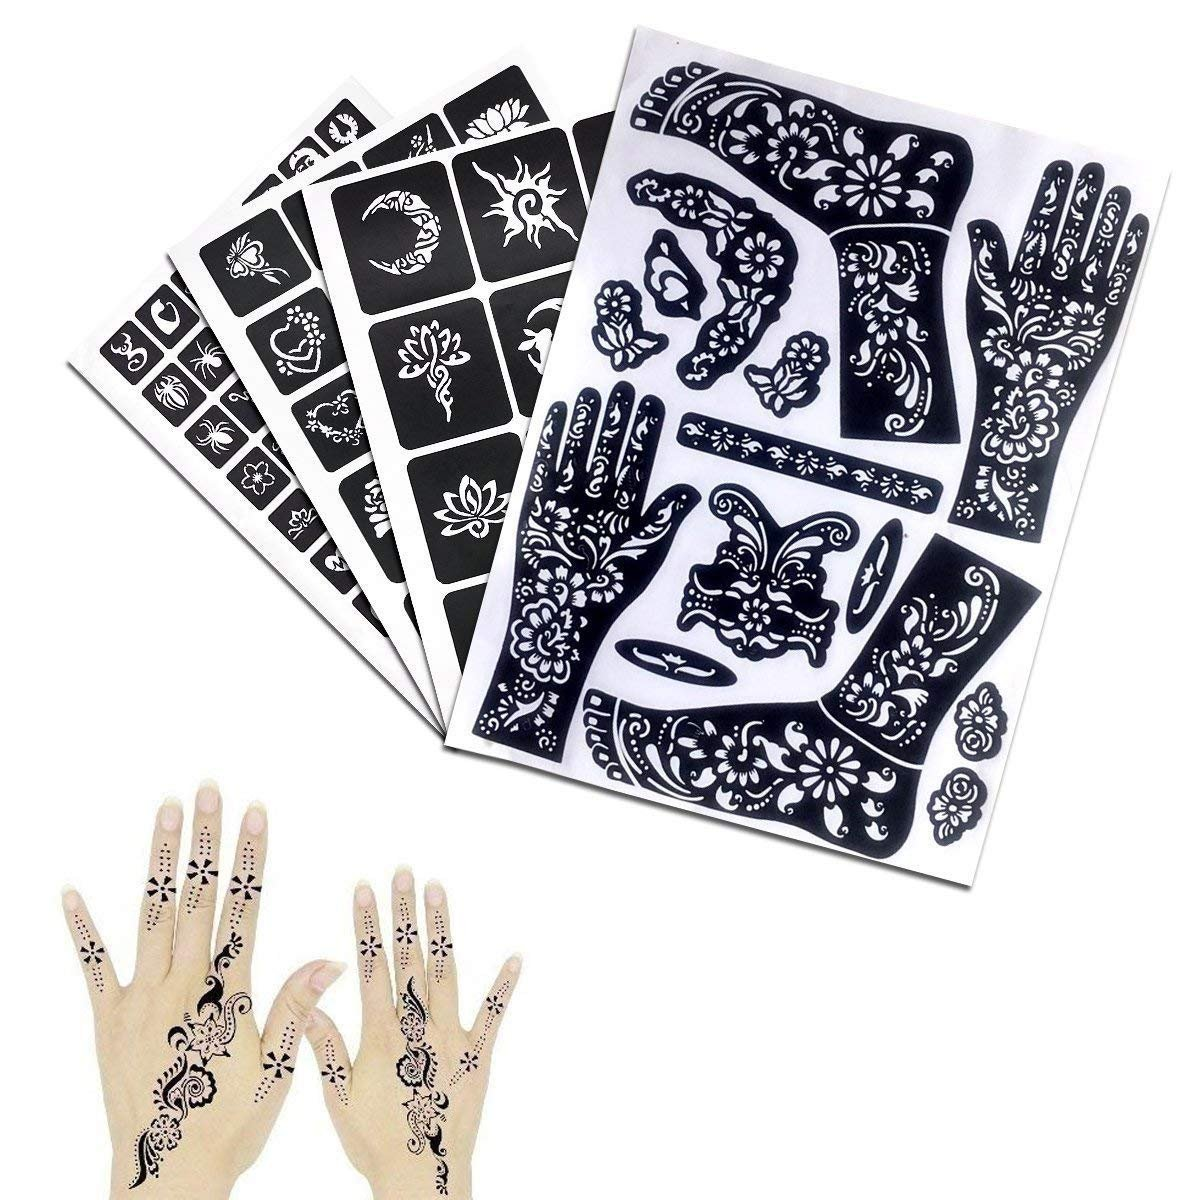 India Henna Tattoo Kit, Jessie 7 Packs Temporary Tattoo Paste Cone Body Art Painting Drawing with 120 pcs Free Henna Template Set,Black,Brown,Red,White,Blue, Rose-Carmine by Jessie (Image #3)